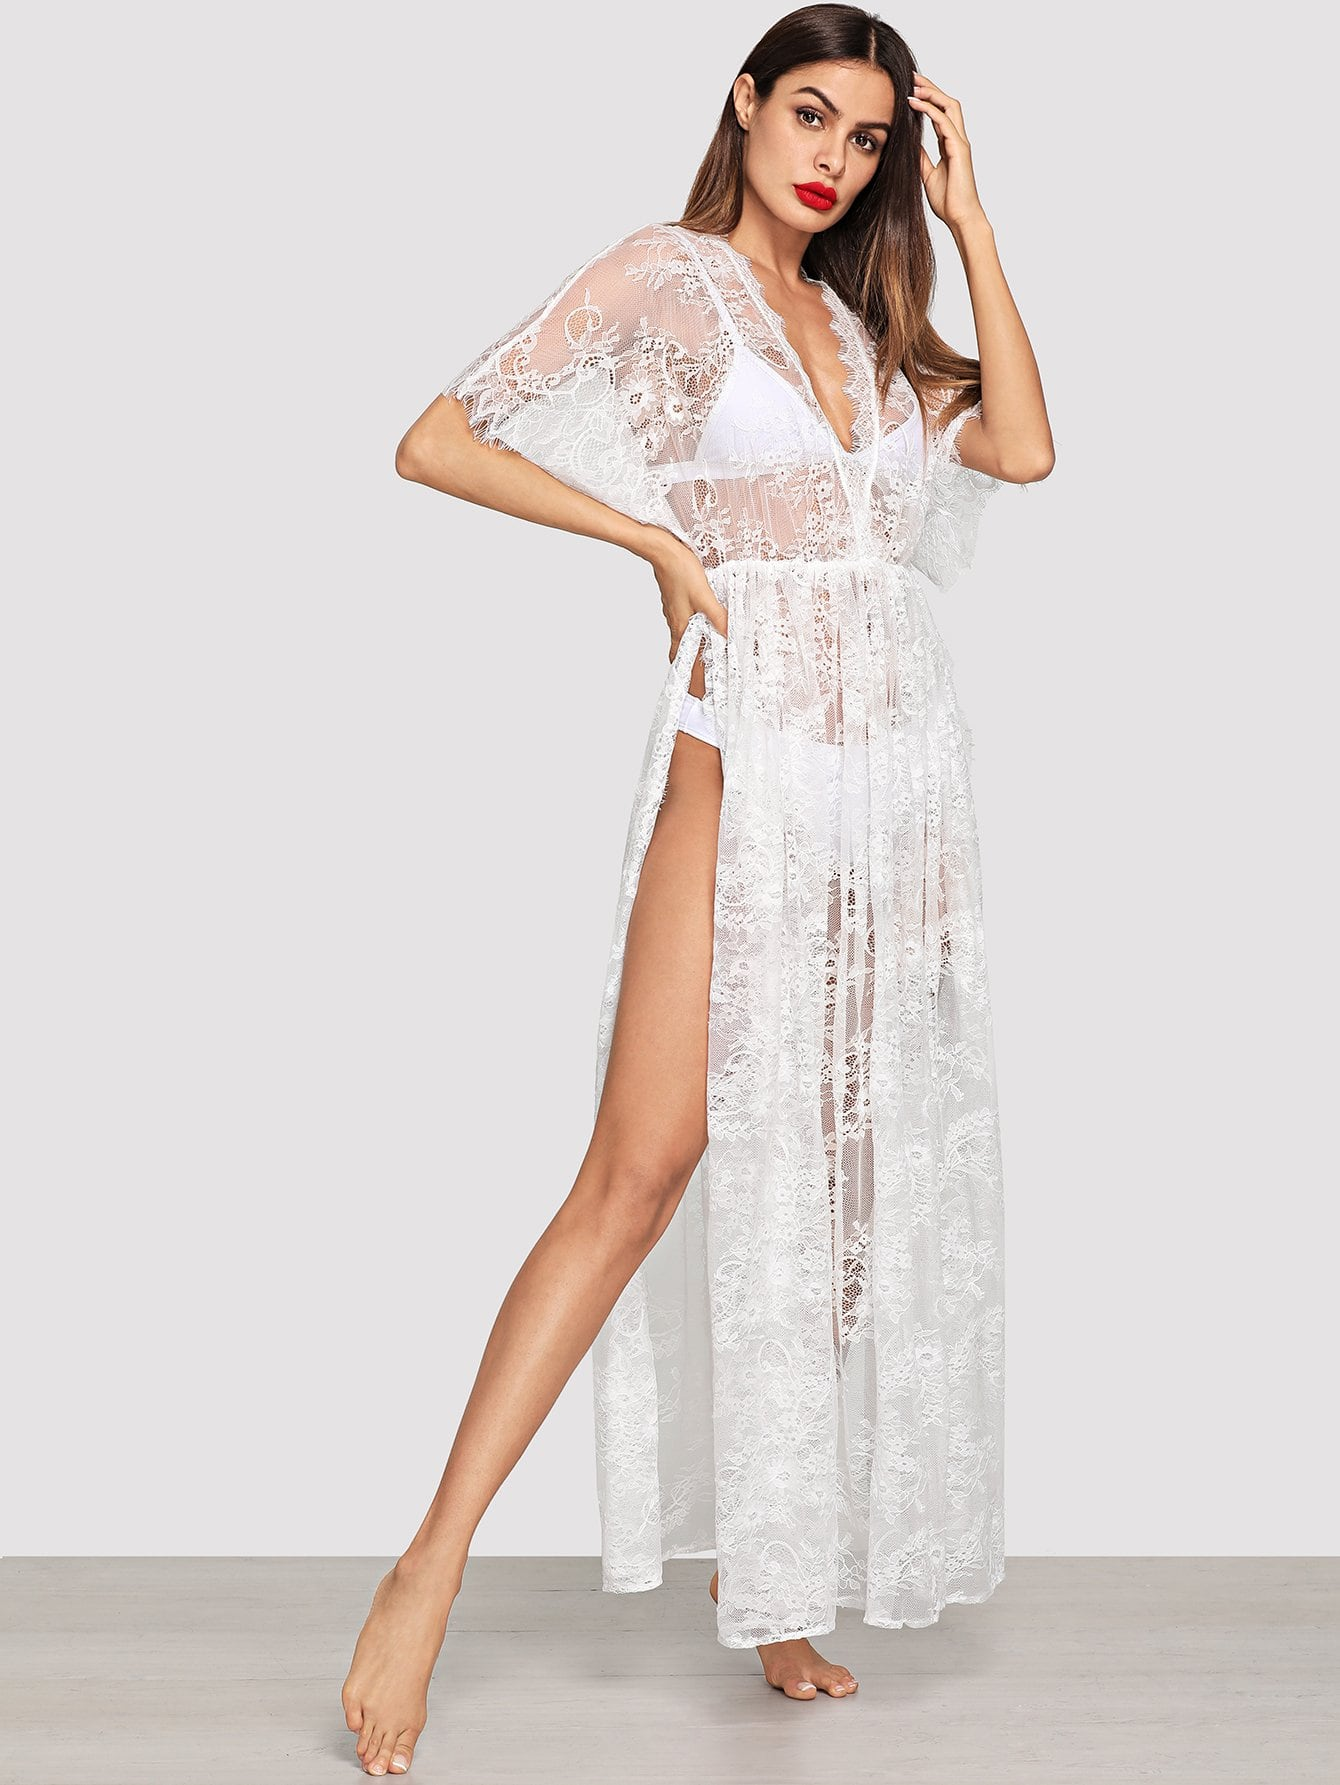 Surplice Wrap Sheer Eyelash Lace Night Dress without Lingerie Set embroidered mesh sheer dress without lingerie dress